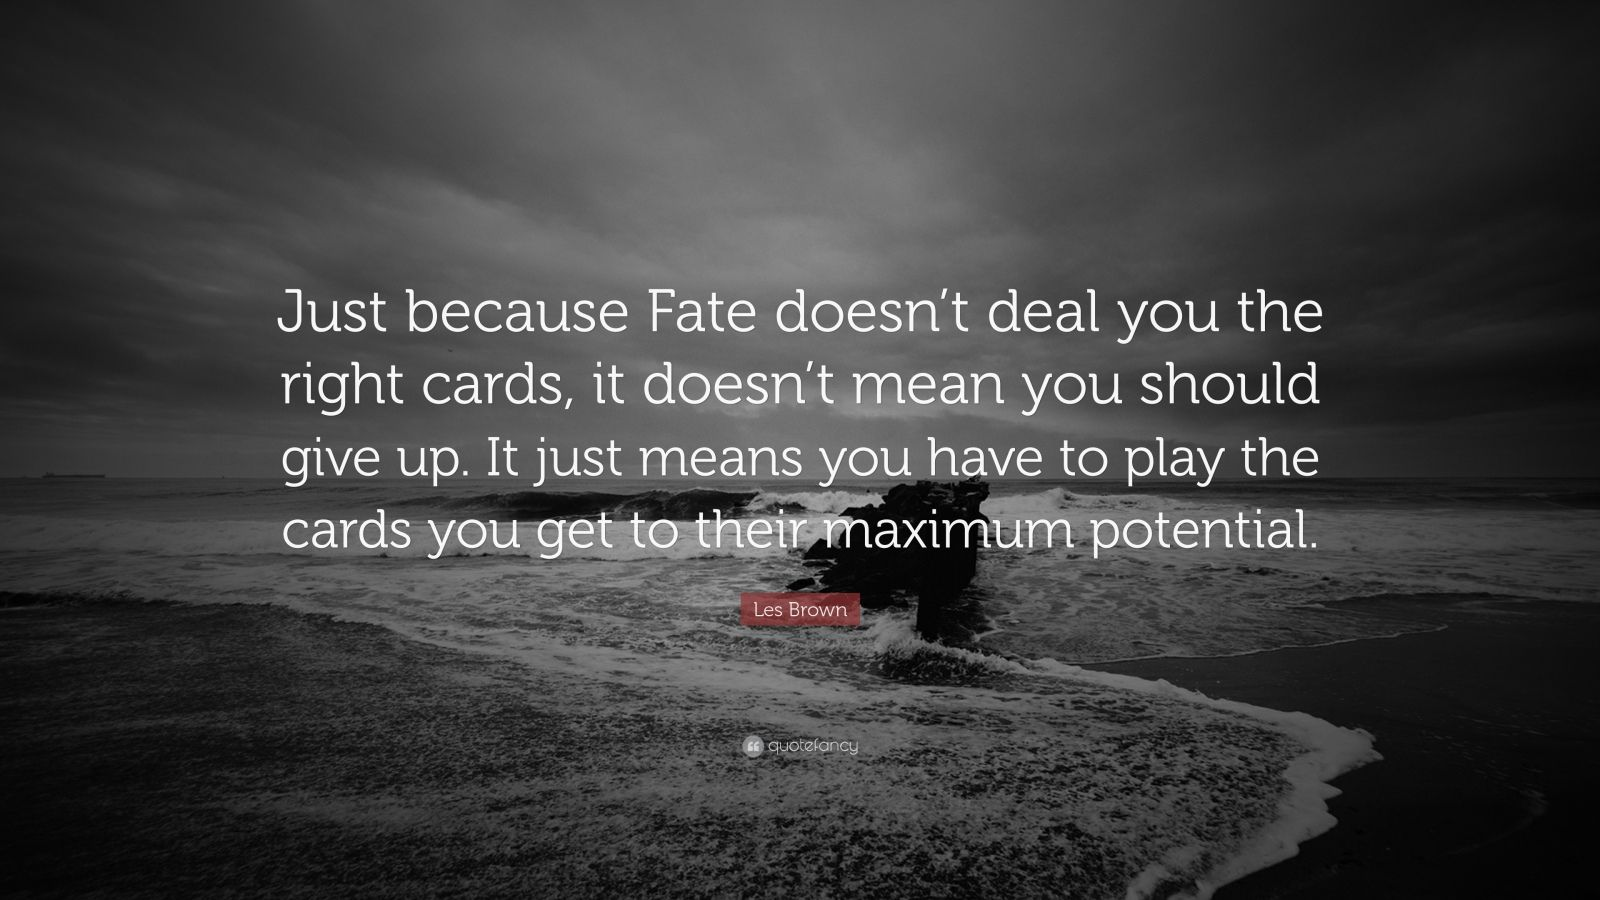 "Les Brown Quote: ""Just because Fate doesn't deal you the right cards, it doesn't mean you should give up. It just means you have to play the cards you get to their maximum potential."""